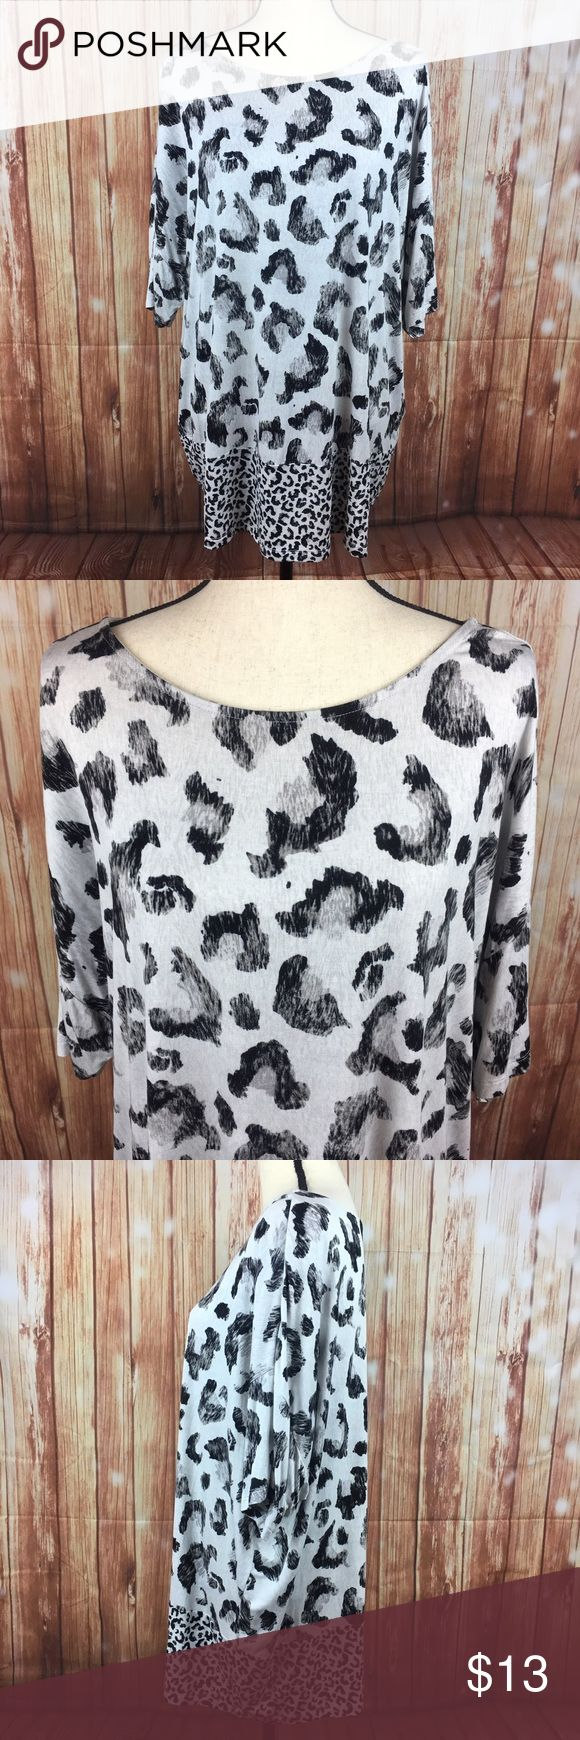 """Christopher & Banks Gray Black Leopard Print Shirt Size: Women's Extra Large Brand: Christopher Banks Condition: Excellent, pre-owned  Black & gray leopard print top.  Dolman sleeve. Bateau neckline.  Fabric: 95% Rayon, 5% Spandex Measurements: 28"""" bust from underarm to underarm 28"""" length from shoulder to hem  24.5"""" width at hem, laid flat Christopher & Banks Tops"""